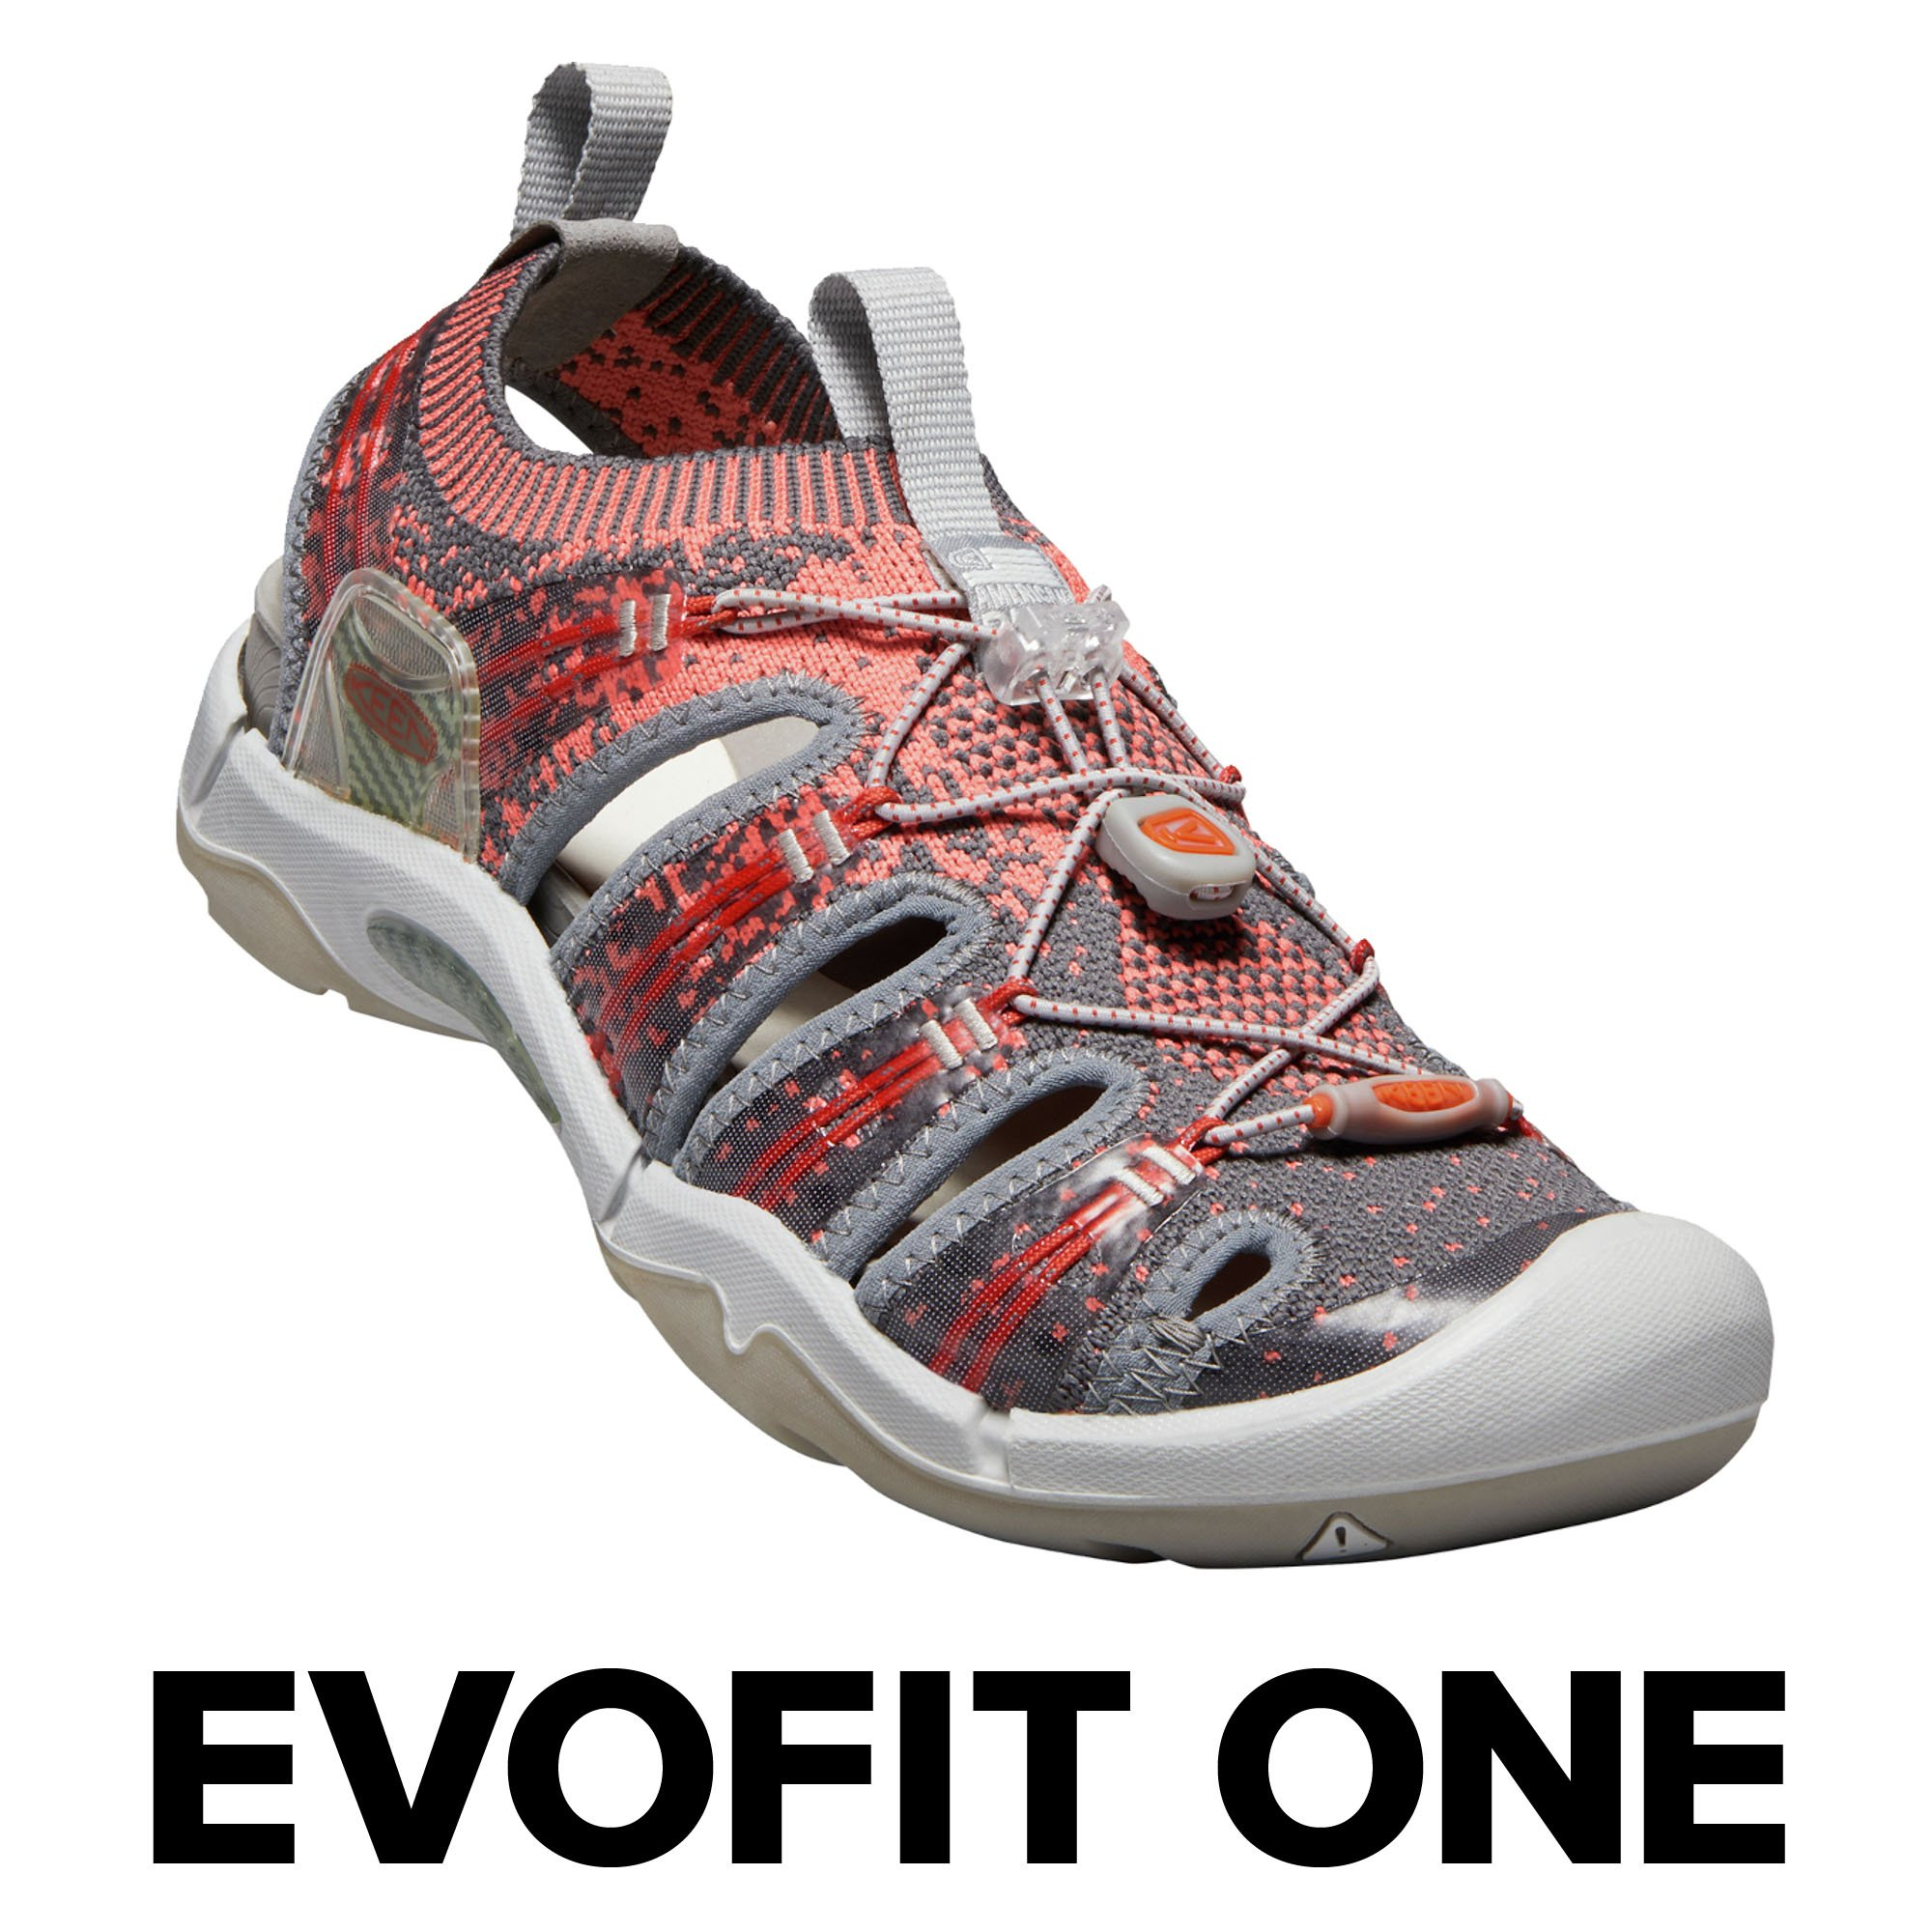 KEEN Evofit One, Women's Water Sandal For Outdoor Adventures, 8 M US, Crabapple/Summer Fig